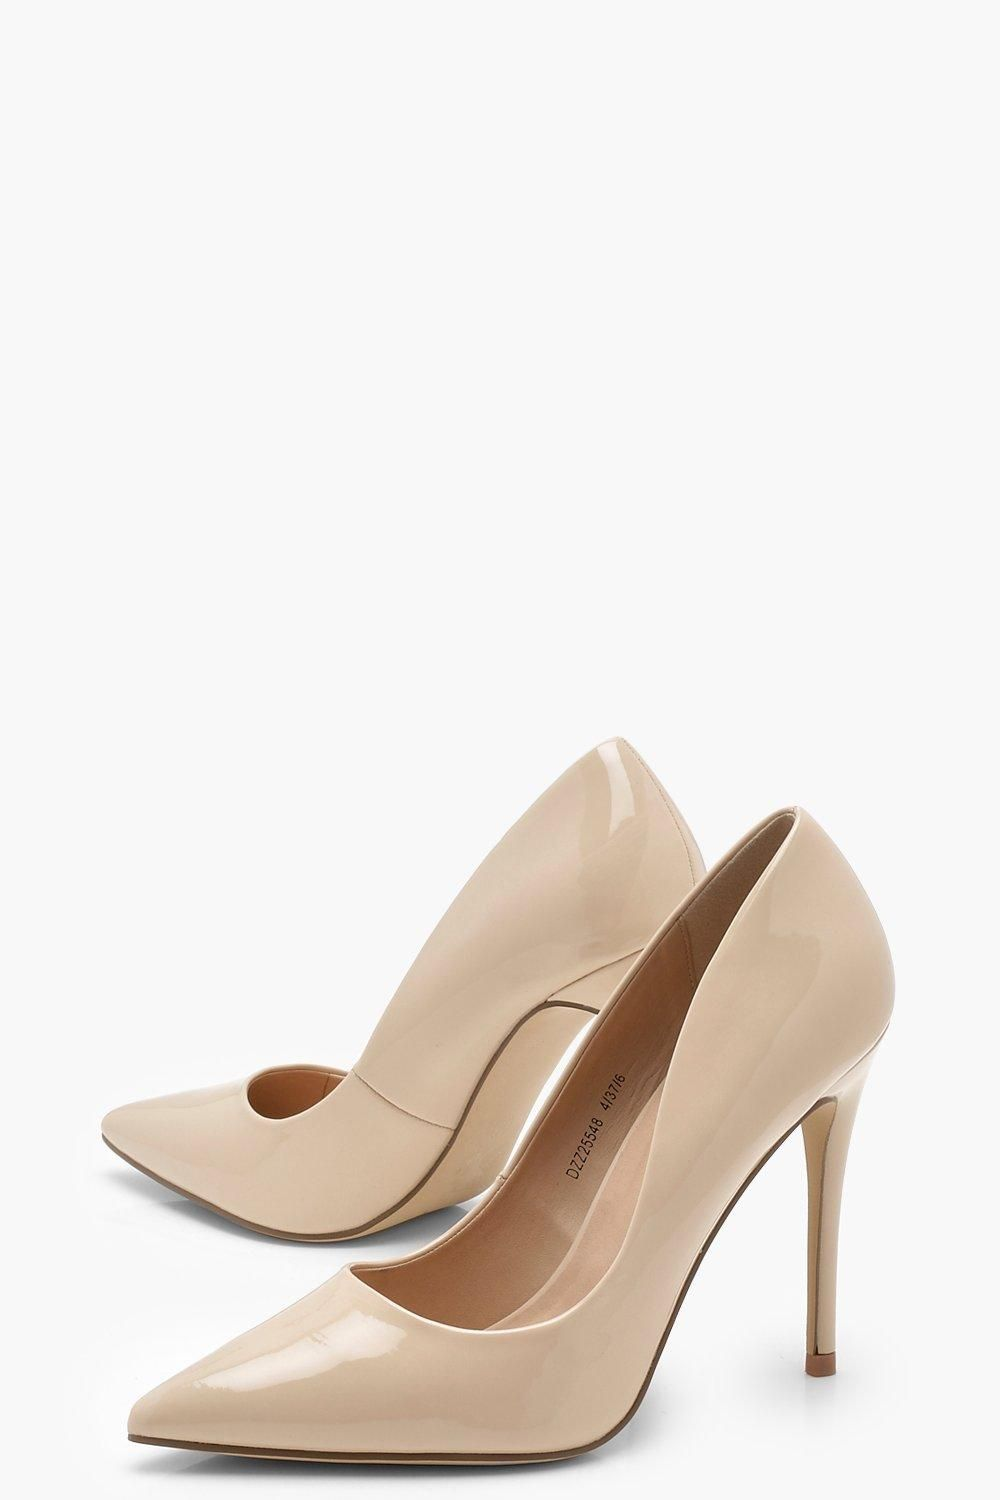 Patent Pointed Toe Court Shoes Boohoo Pointed Toe Shoes Beige Court Shoes Court Heels